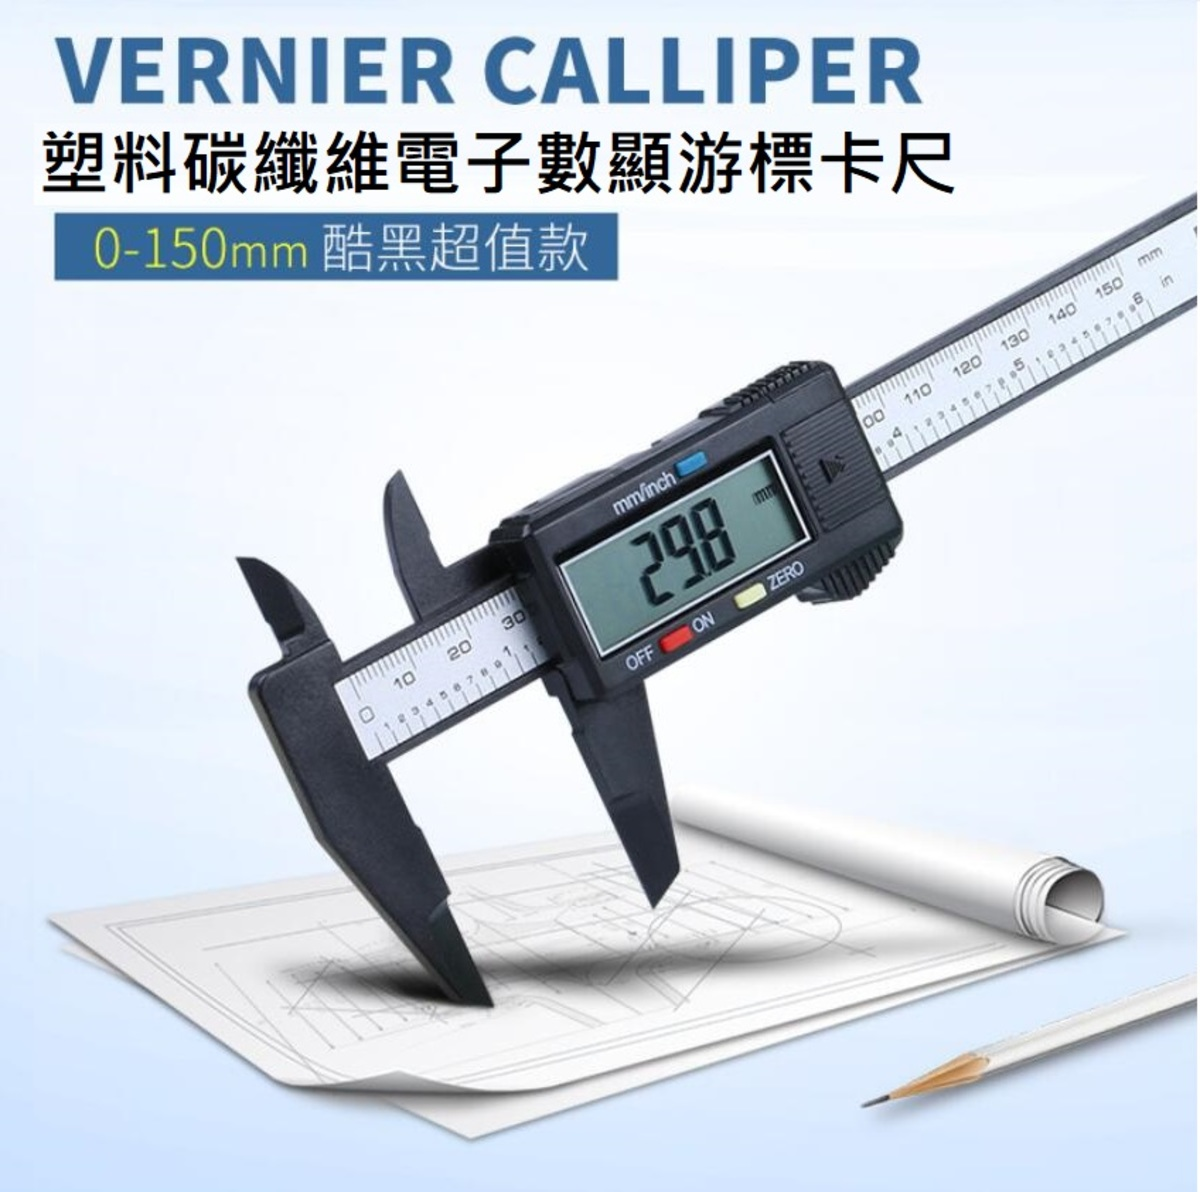 Digital Vernier Caliper 150mm- EL0069